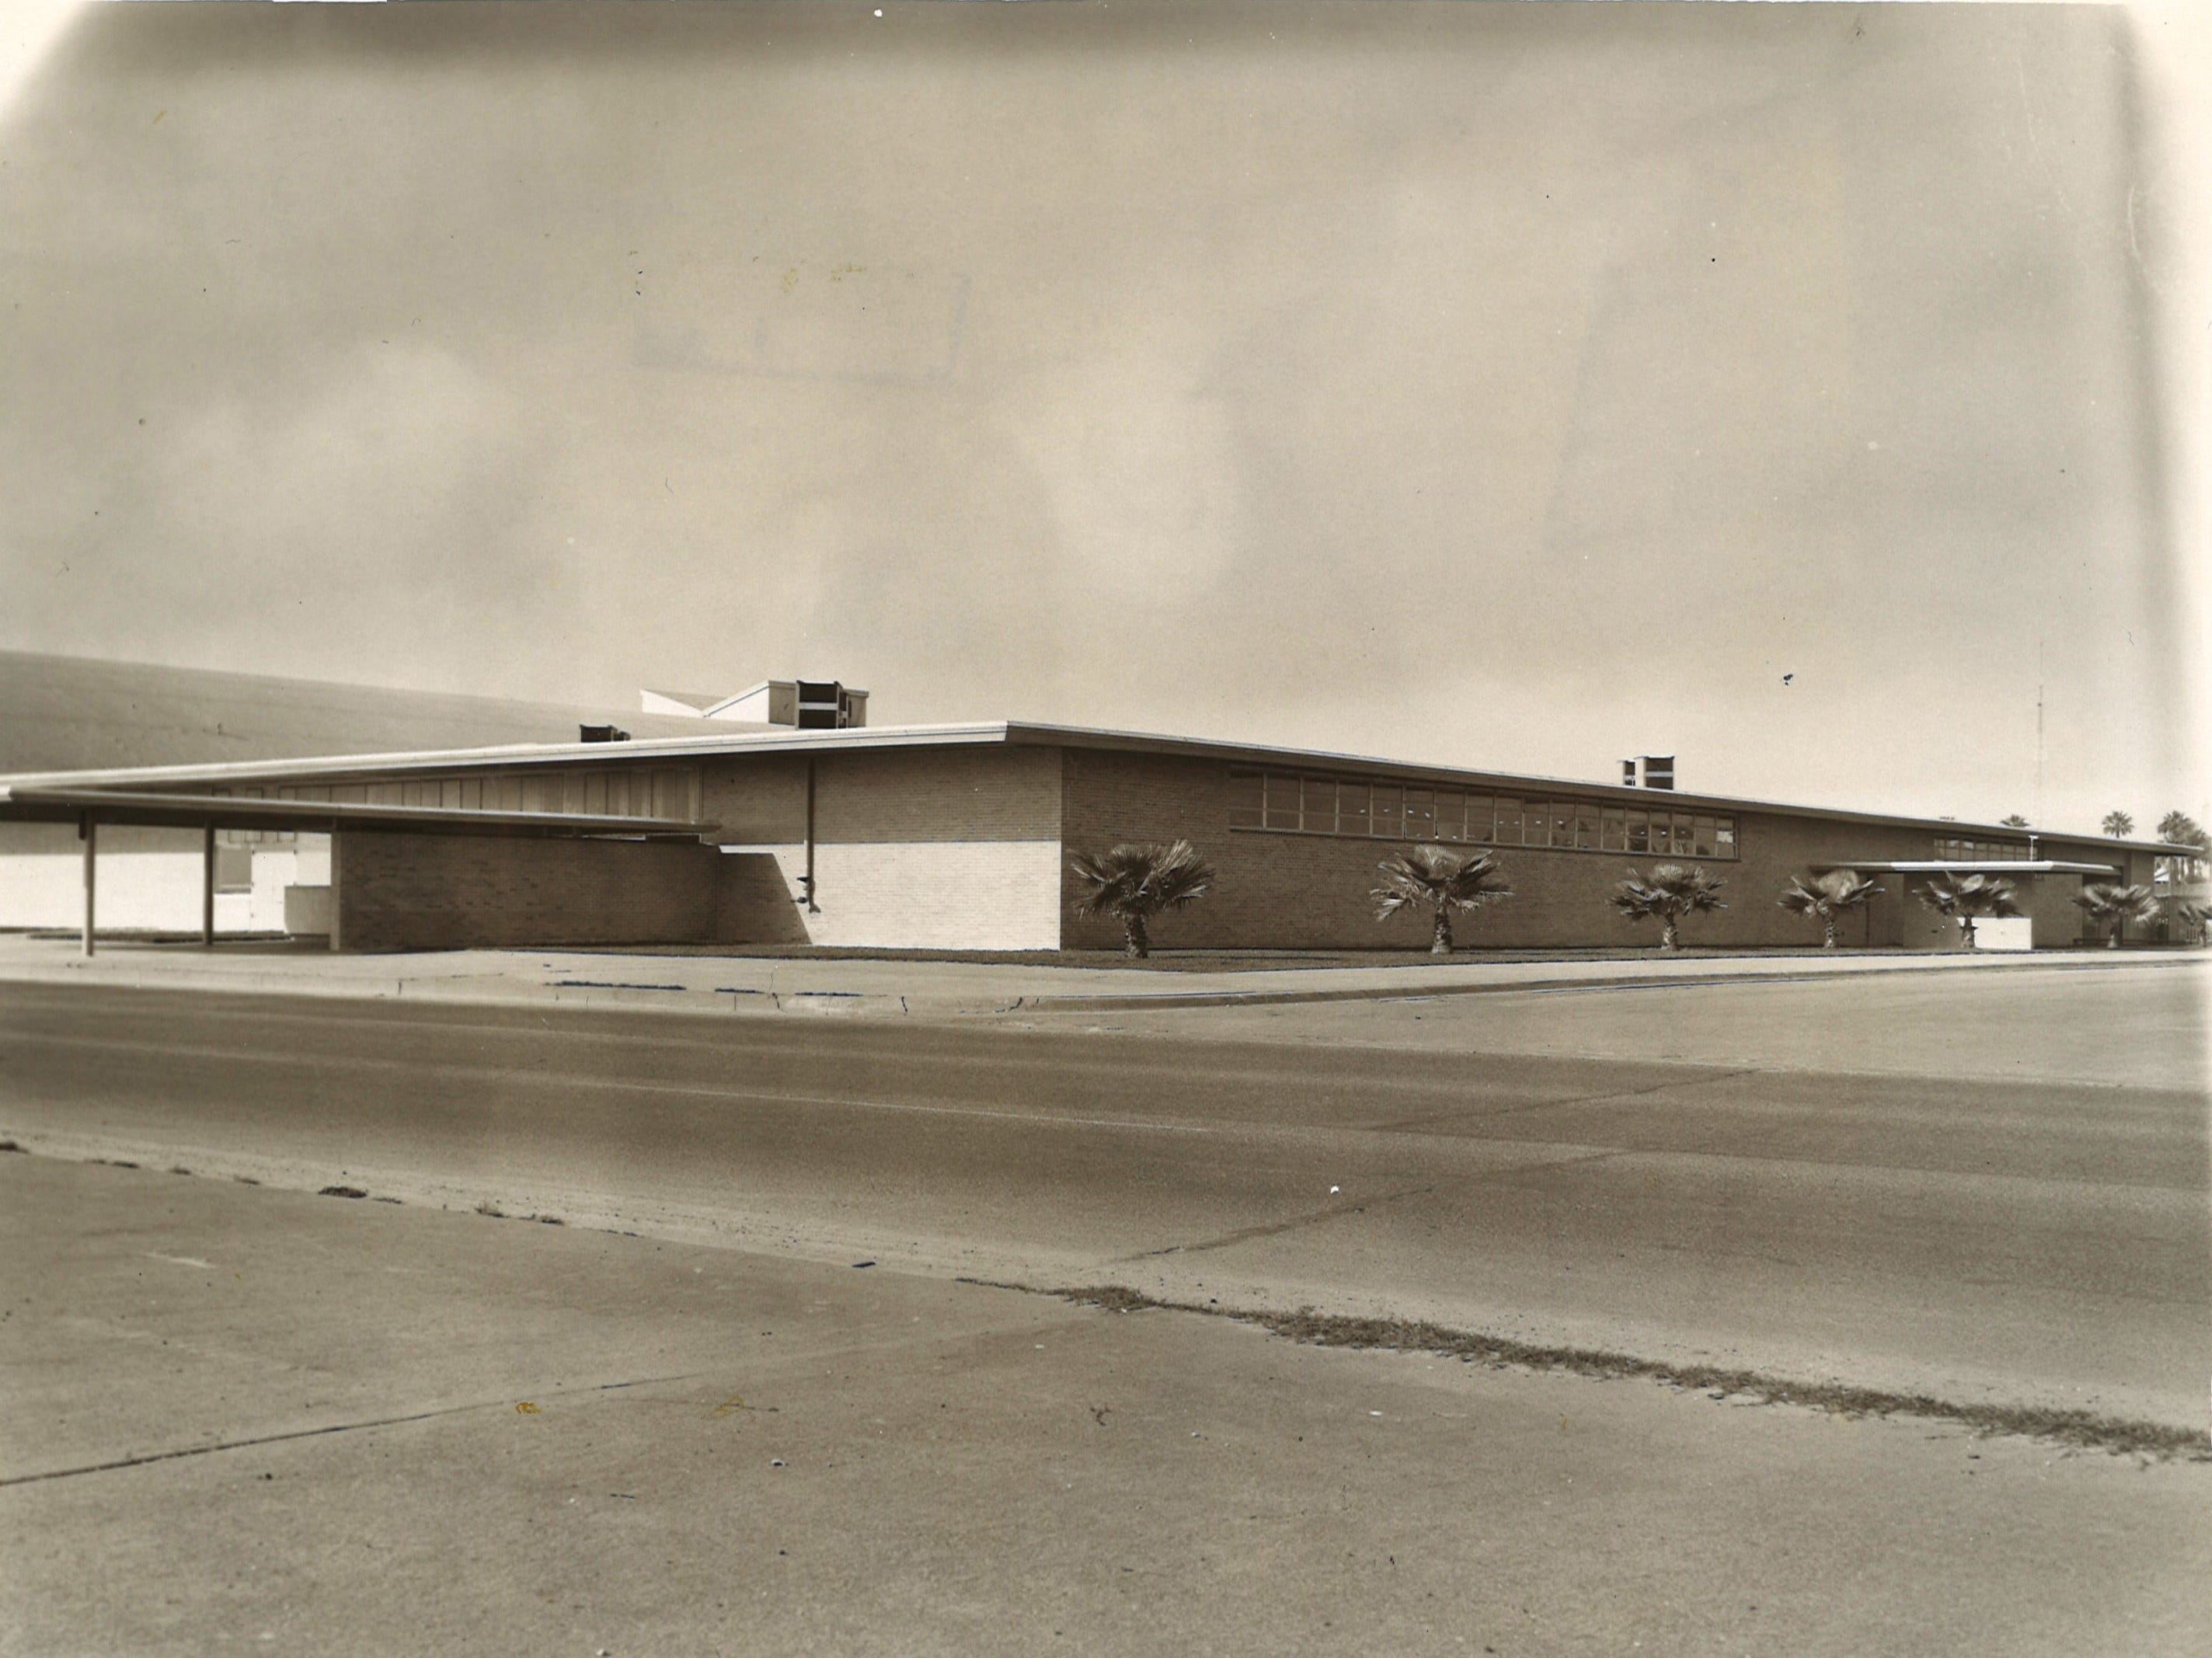 Corpus Christi's Exposition Hall on Shoreline Boulevard, seen in this undated photo, was Memorial Coliseum's counterpart.